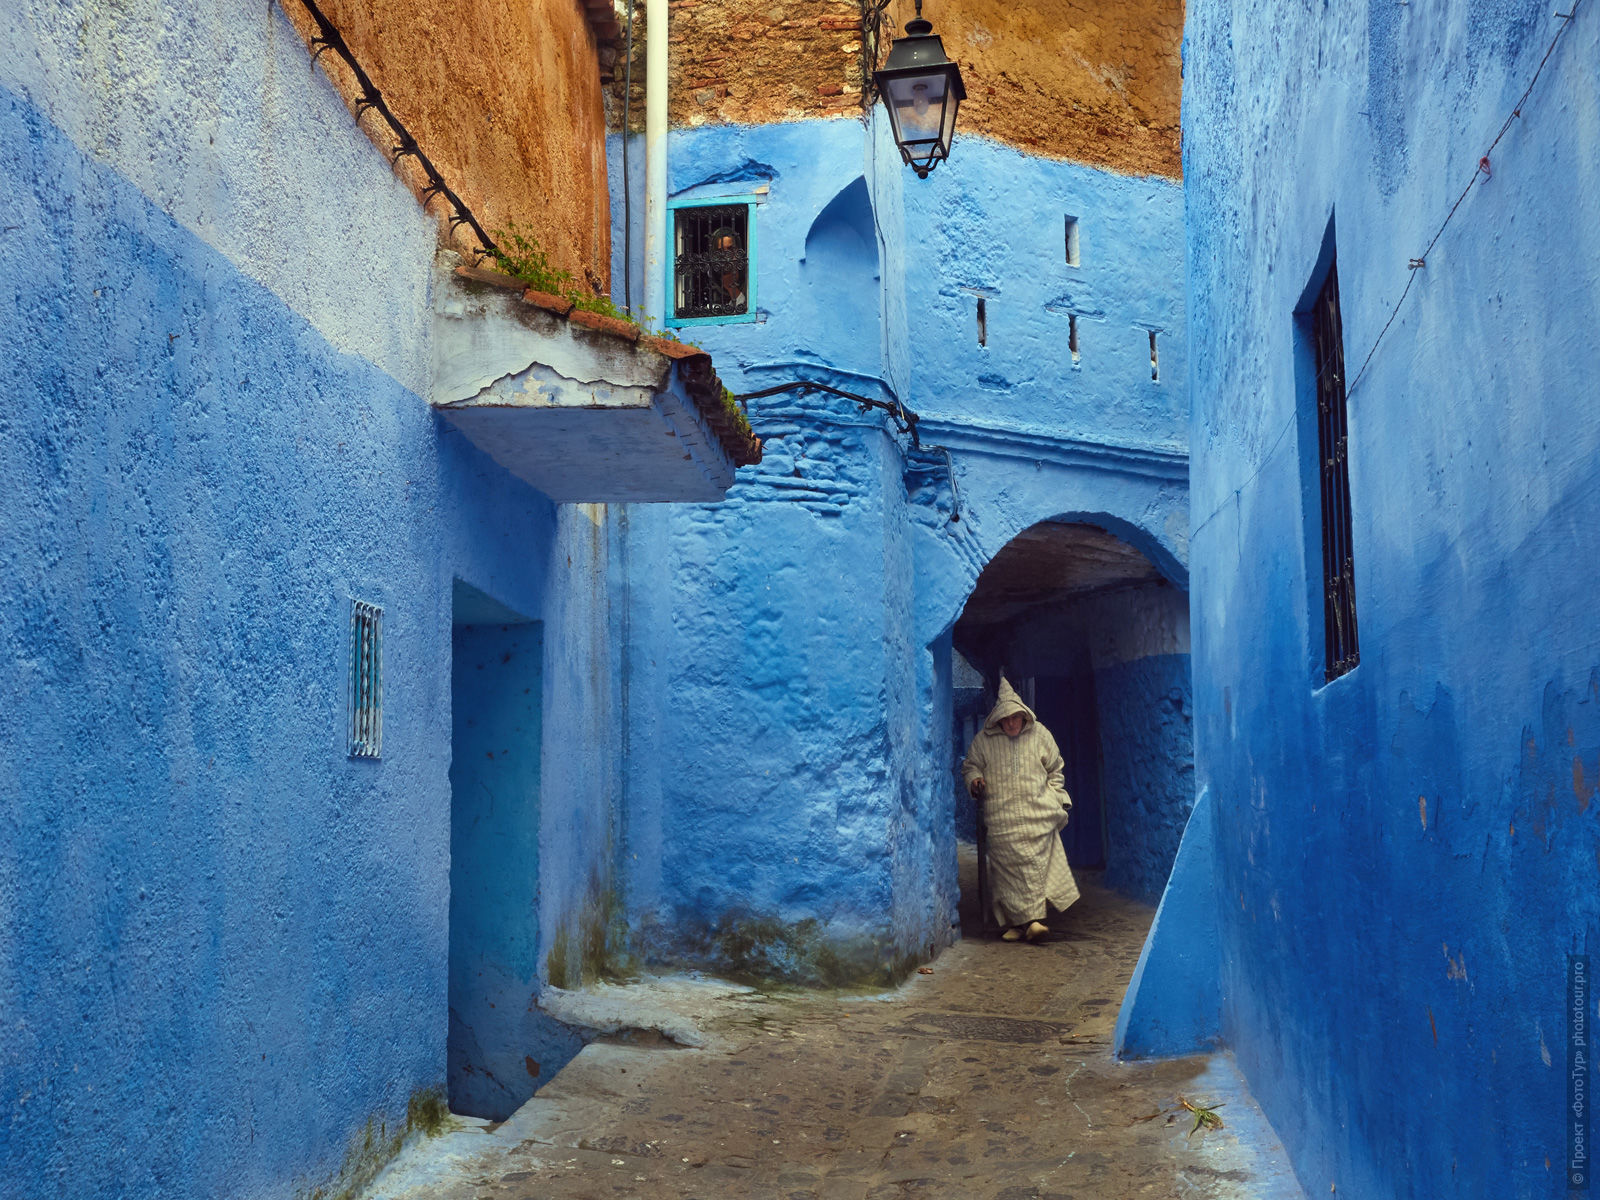 Streets of Medina Chefchaouen, Morocco, photo tour of Morocco, October 2018.